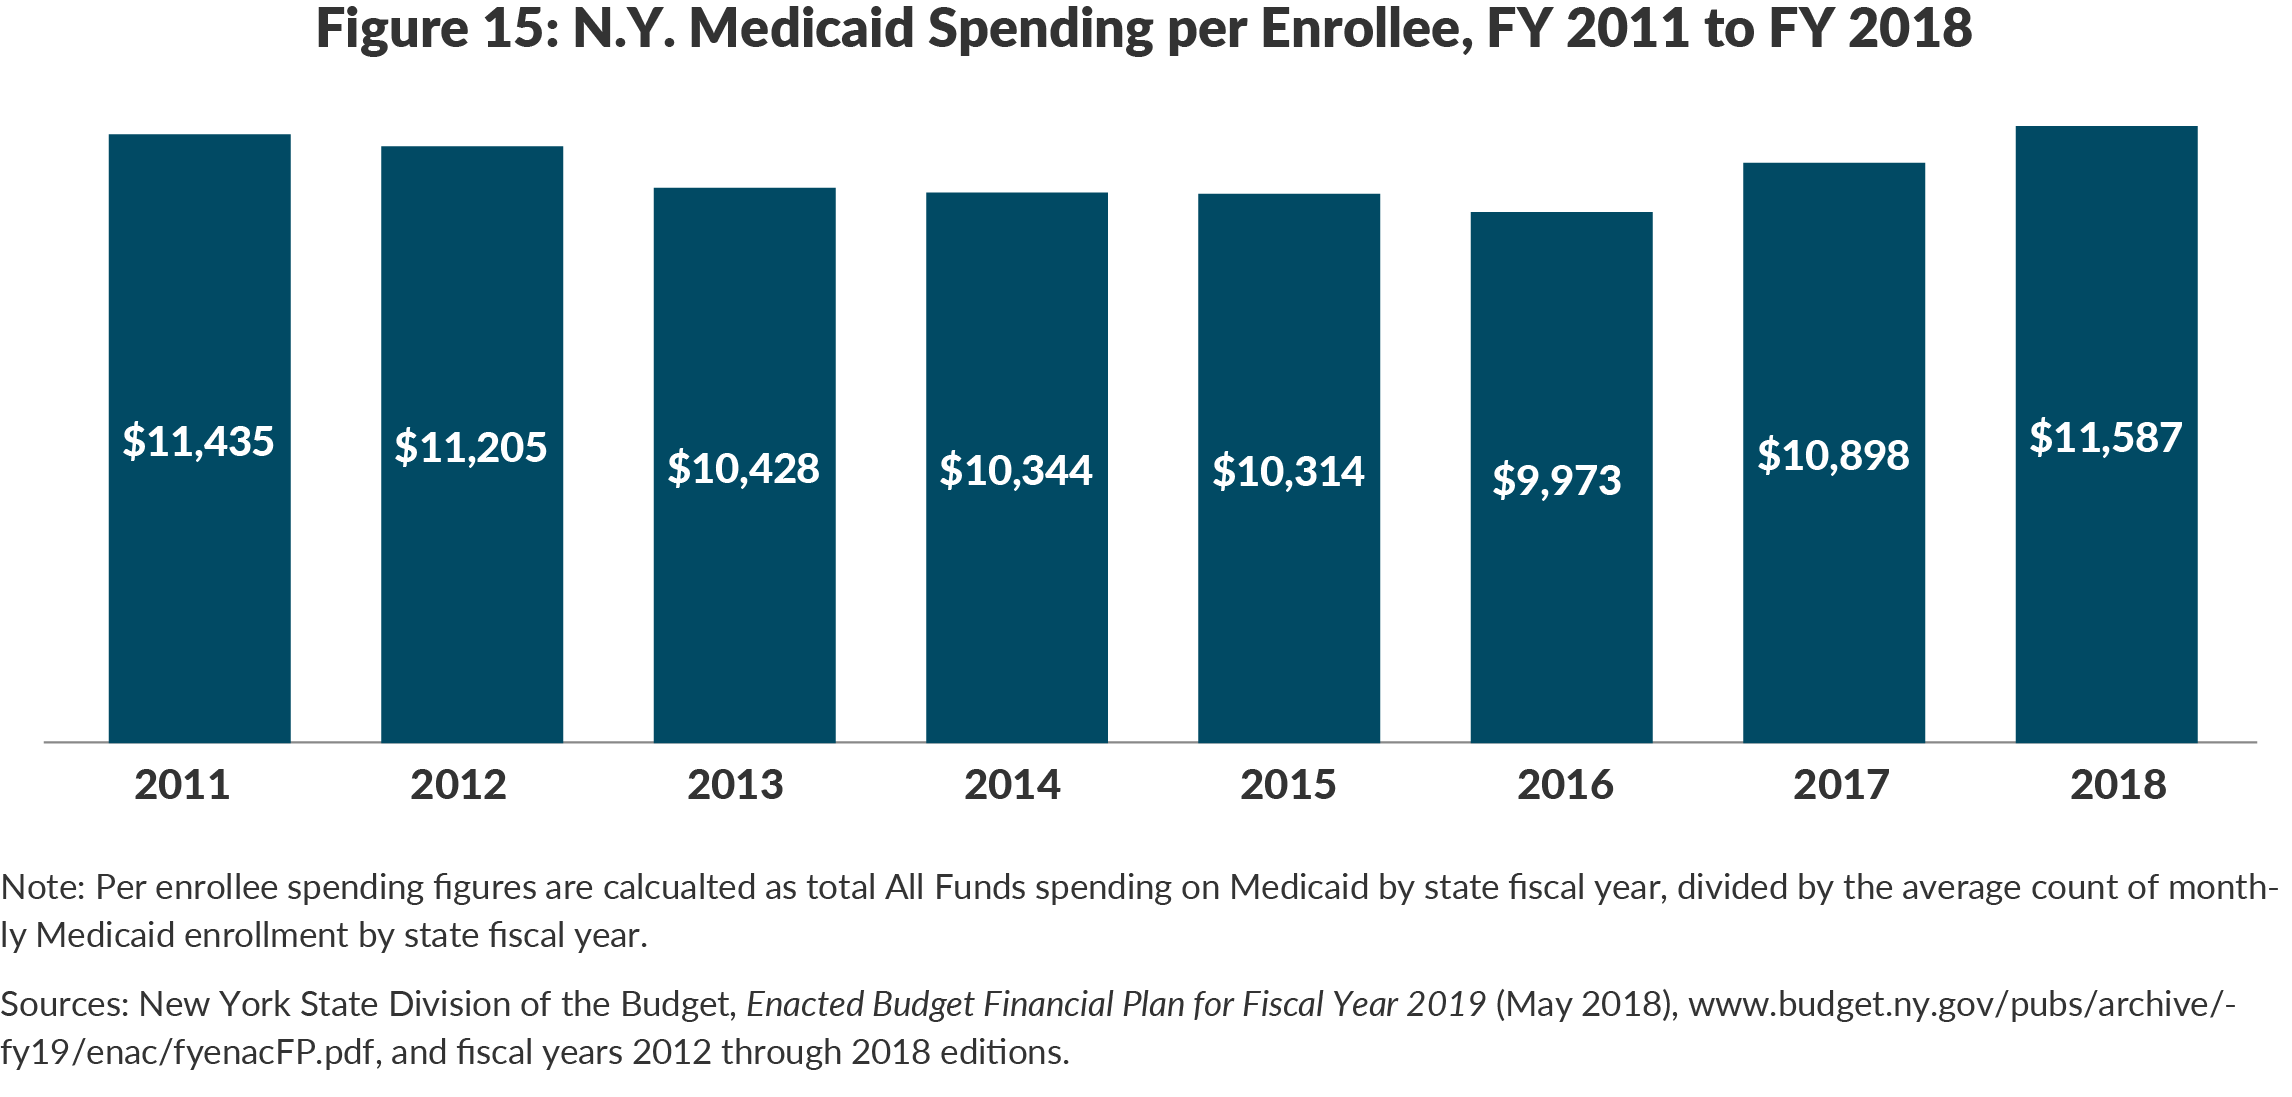 Figure 15: N.Y. Medicaid Spending per Enrollee, FY 2011 to FY 2018